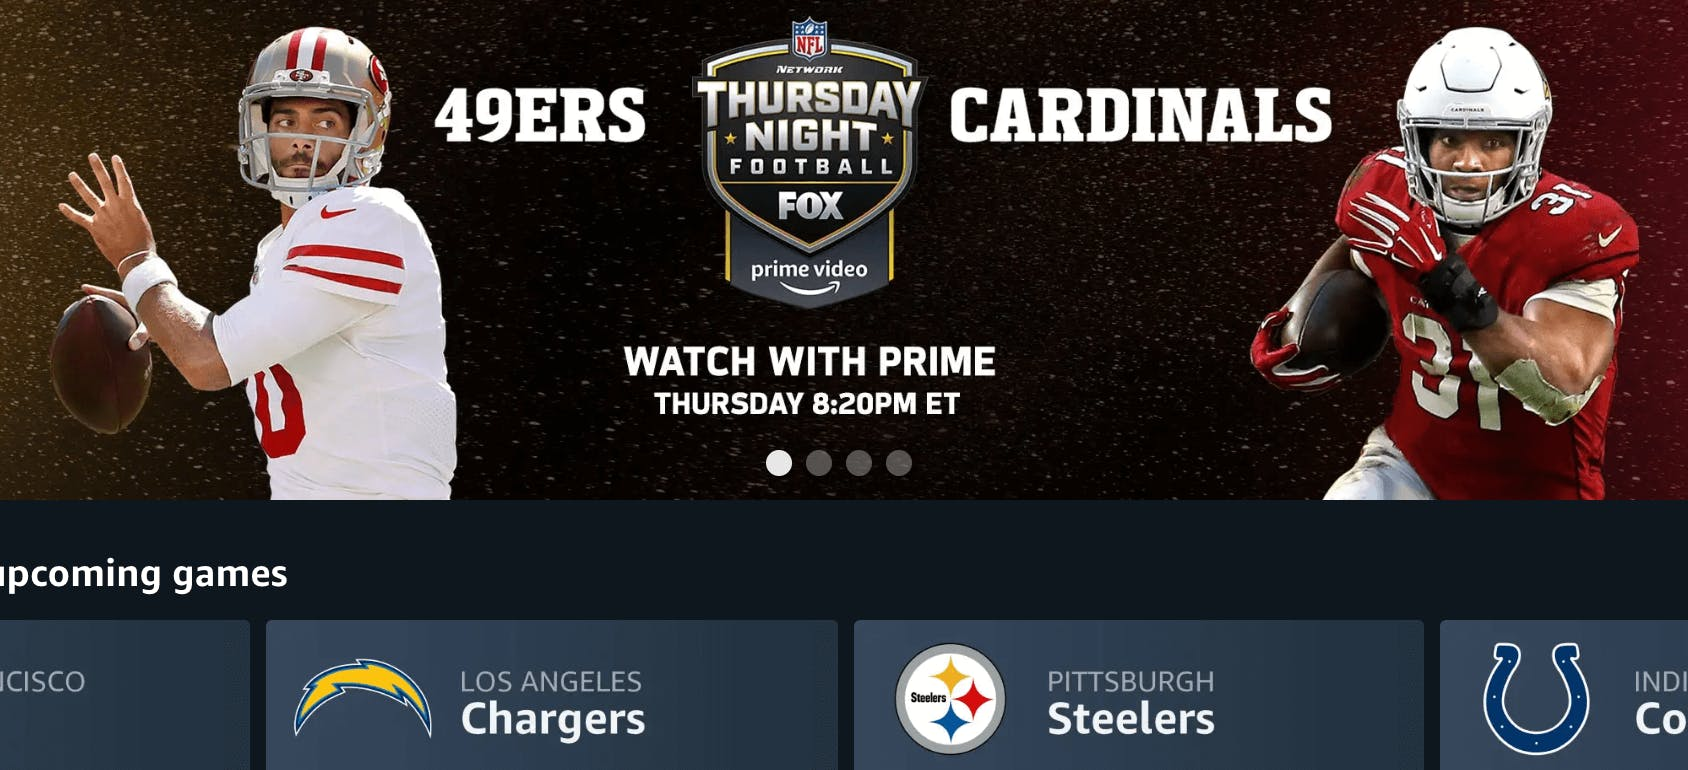 49ers cardinals amazon streaming nfl